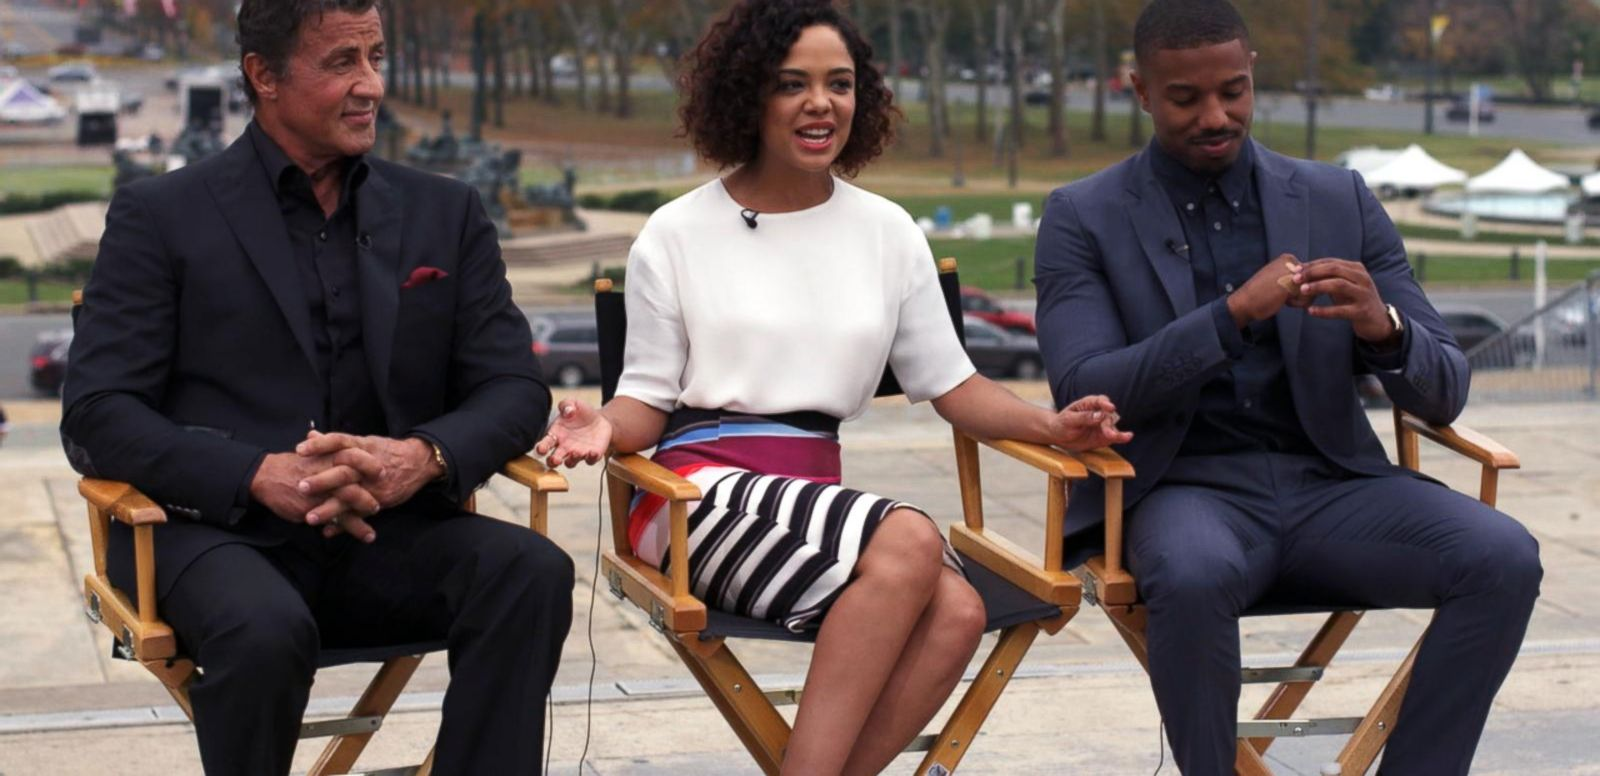 VIDEO: On Location With the Stars of 'Creed'